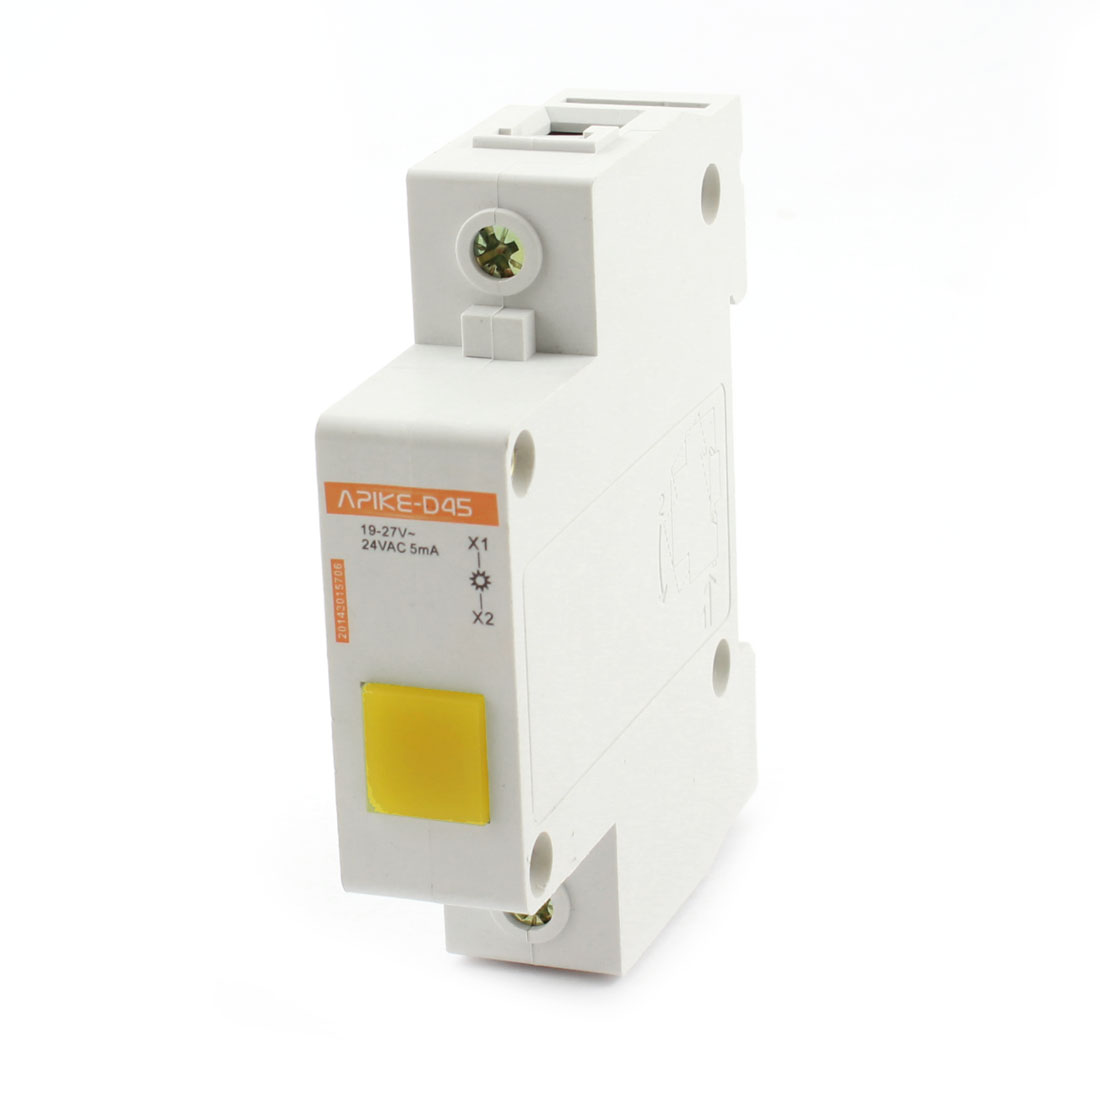 Beige Plastic Shell AC 24V 5mA Yellow LED Modular Power Indicator Light Lamp